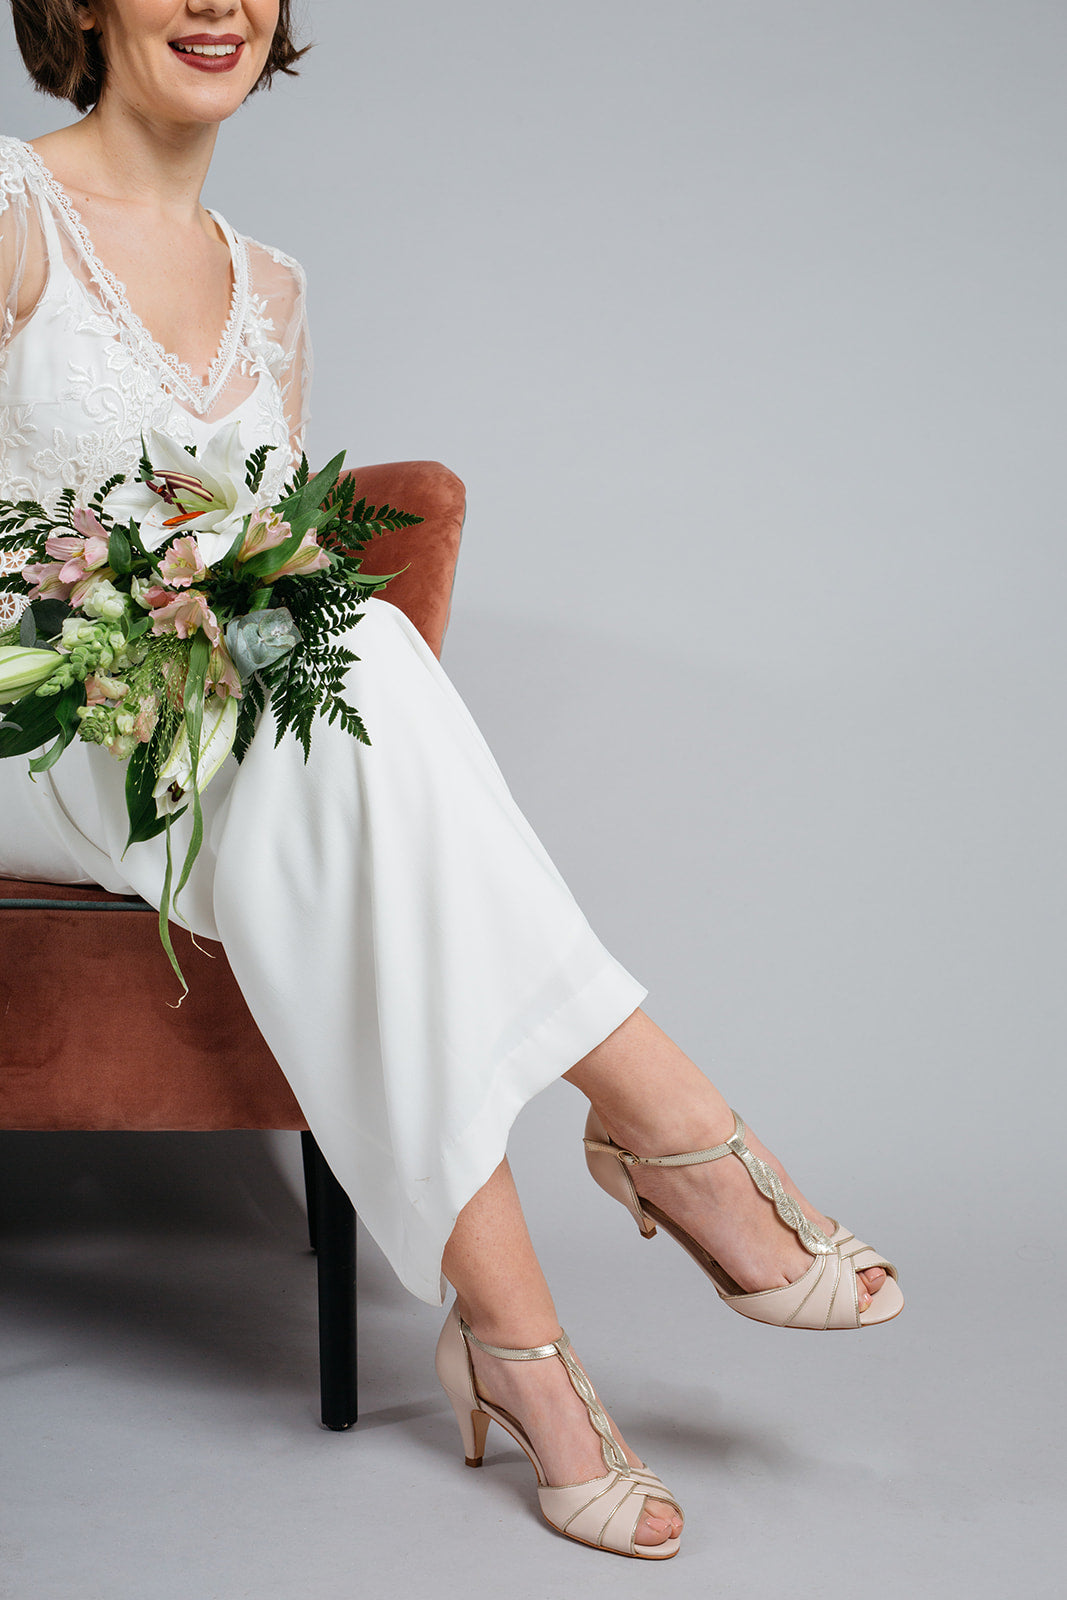 Rachel Simpson Etienne low heel wedding shoes